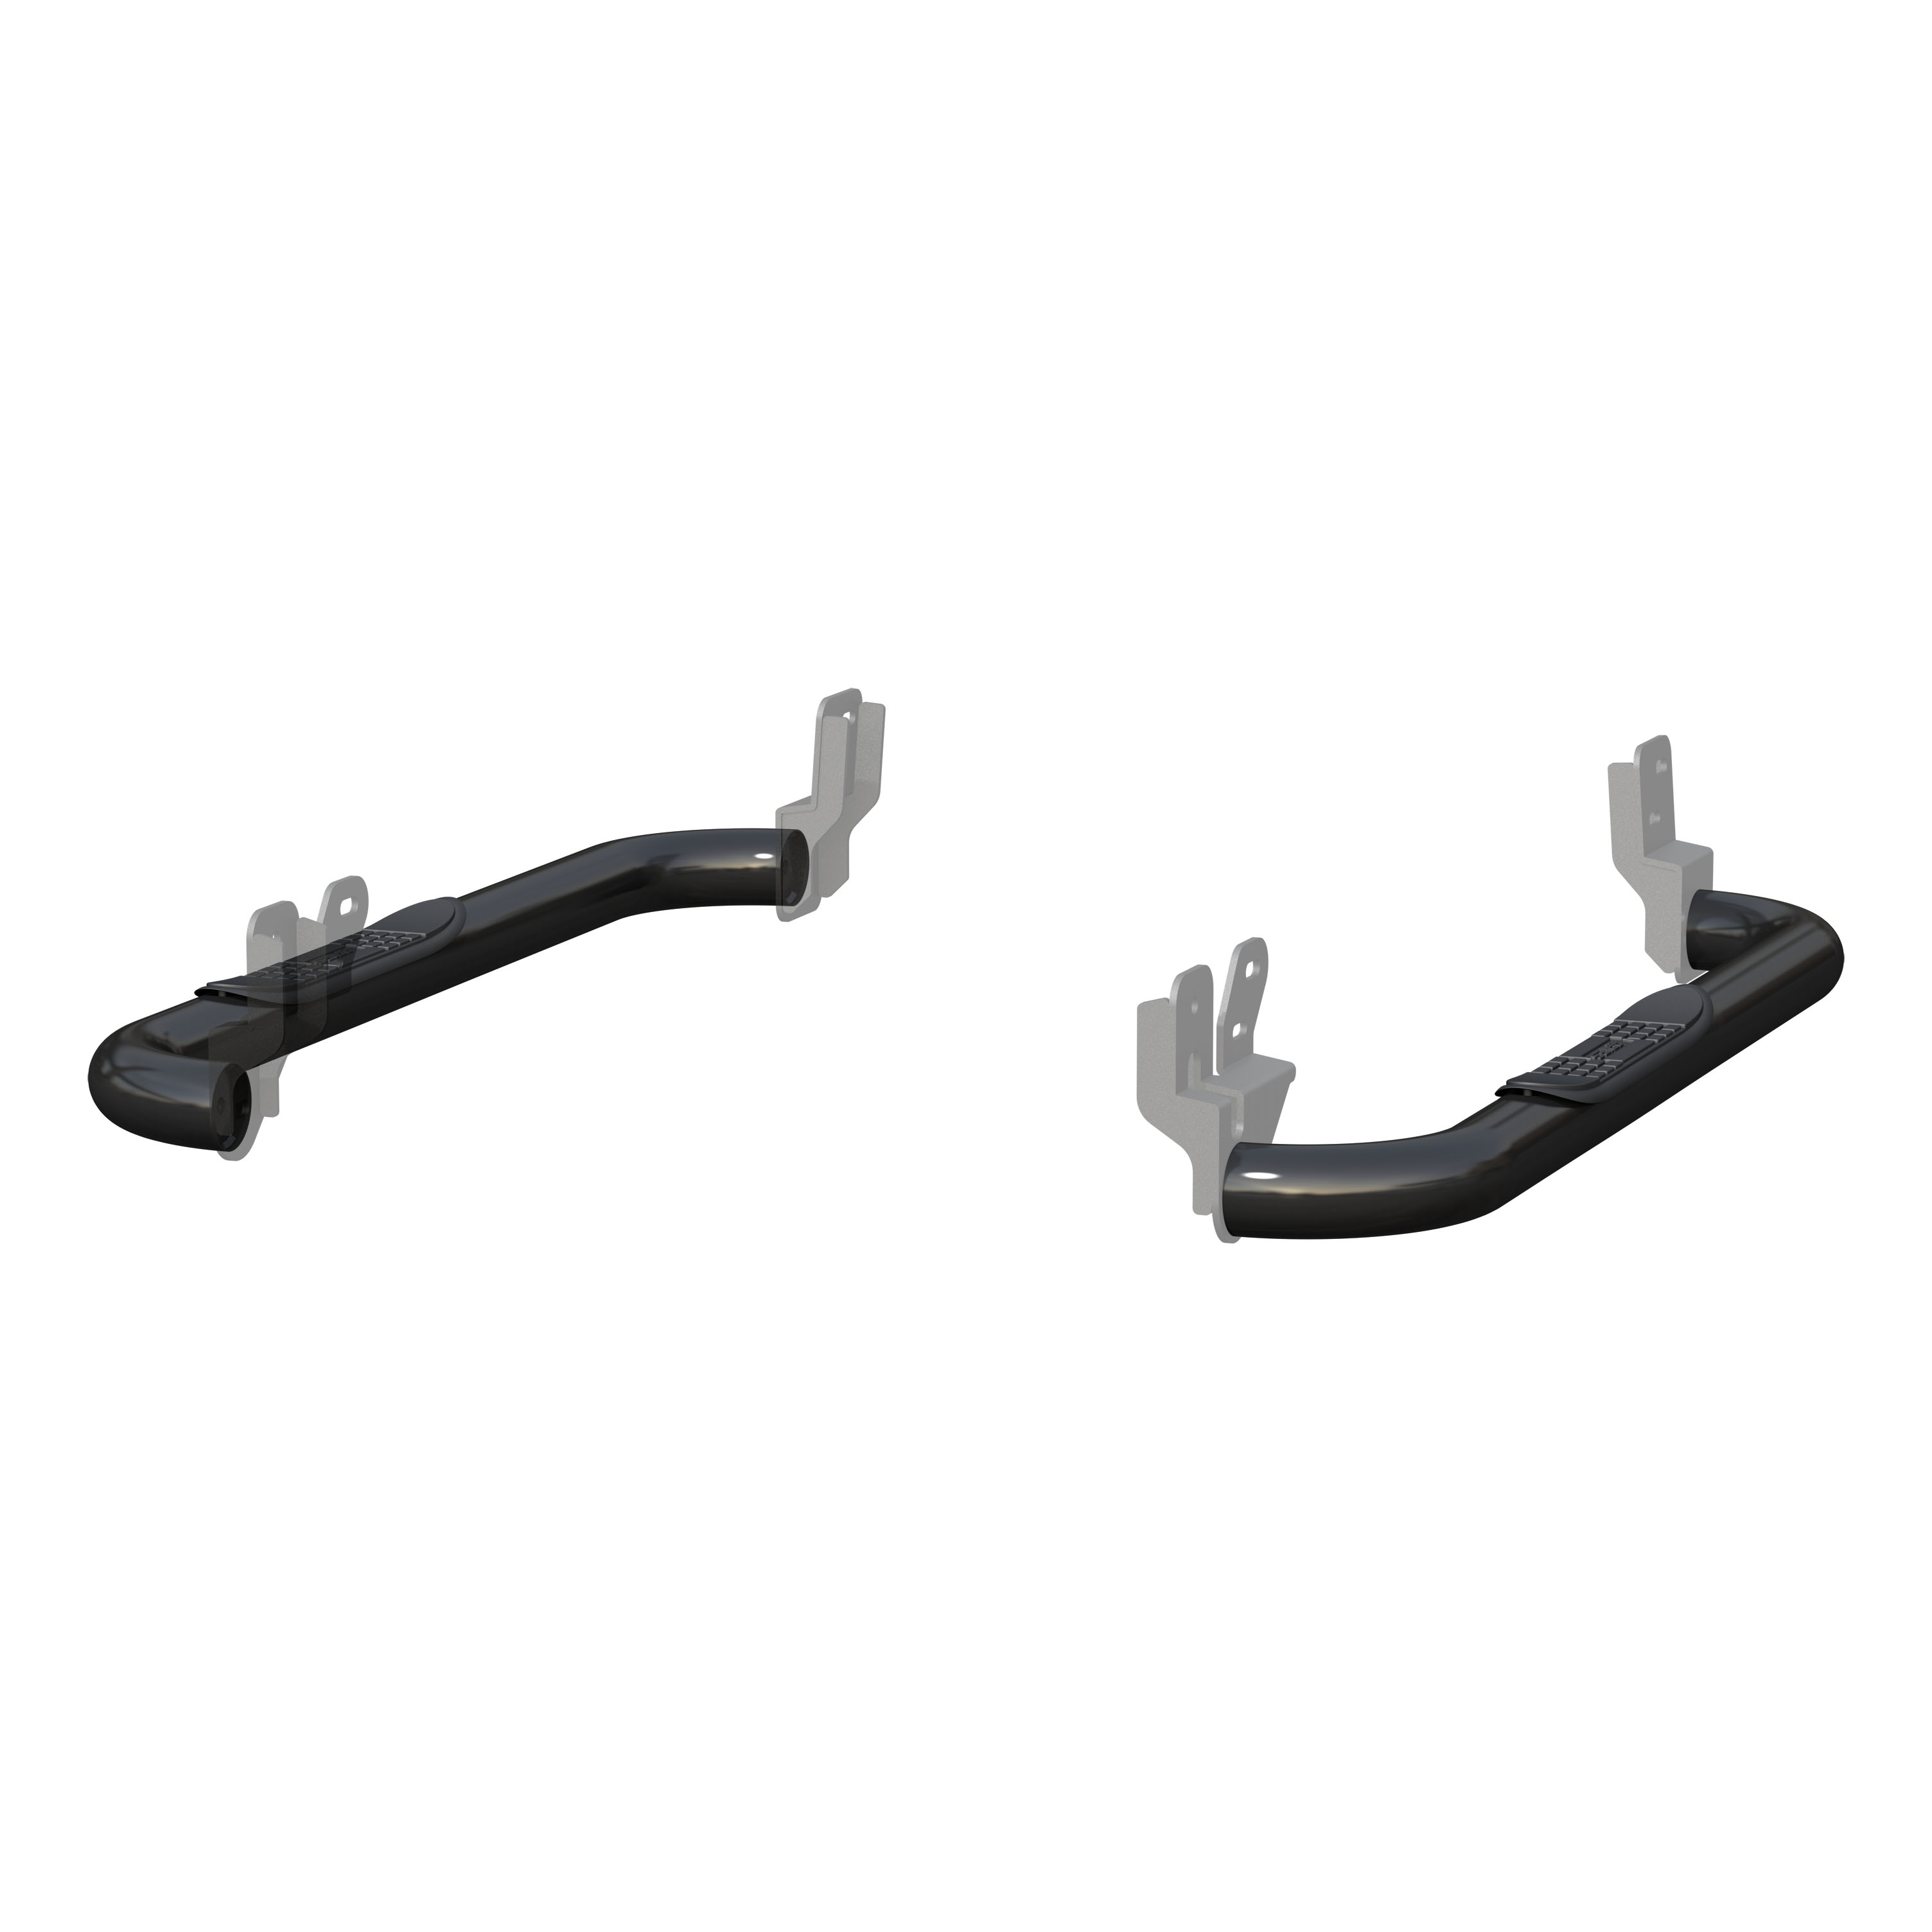 Aries Black 3 In Round Side Bars For 16 Ram